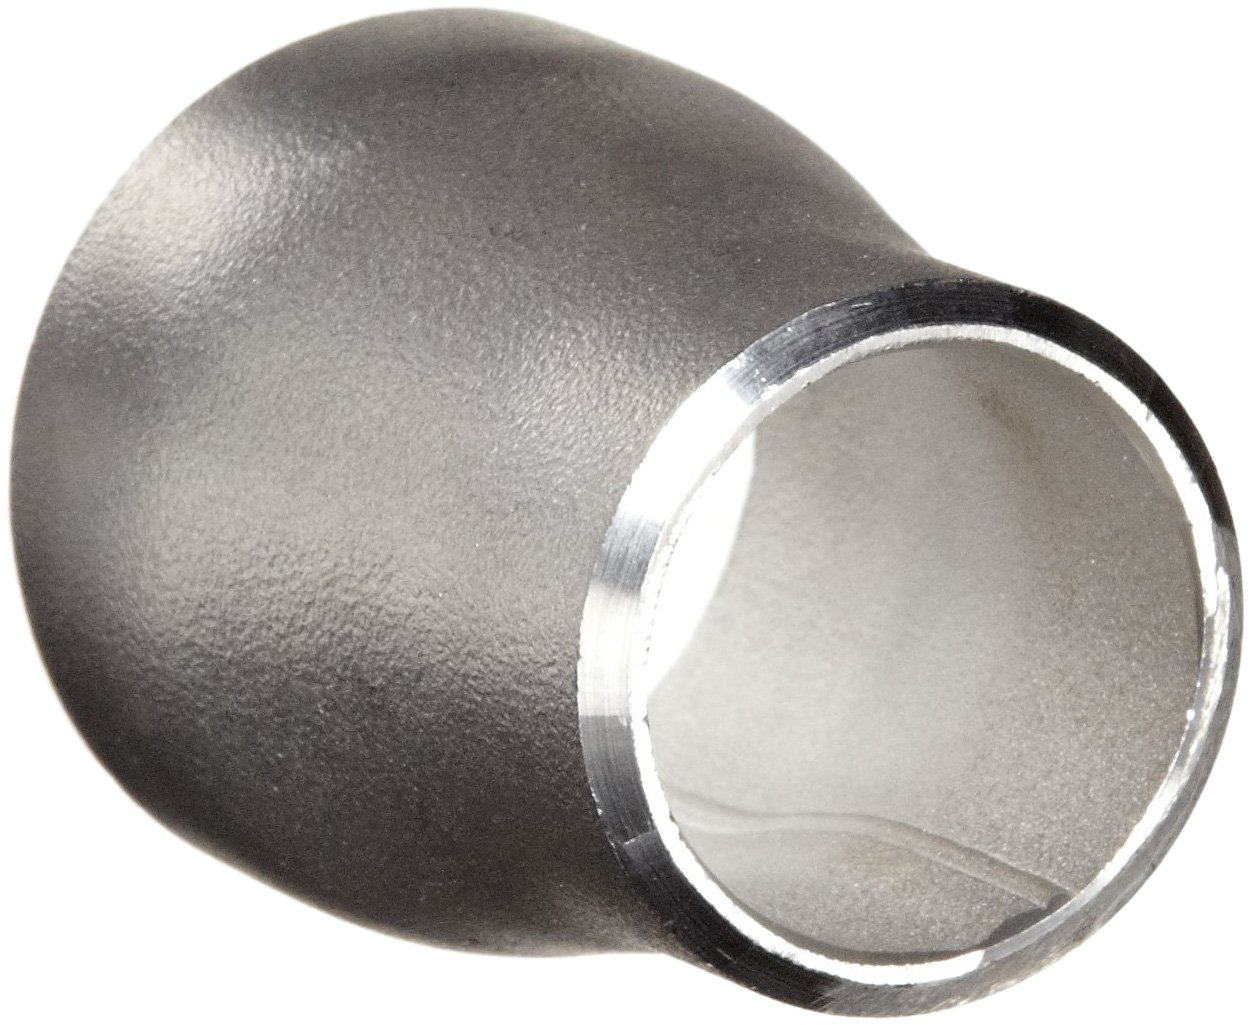 Stainless Steel 304/304L Pipe Fitting, Concentric Reducer Coupling, Butt-Weld, Schedule 10, 10'' X 6'' Pipe Size